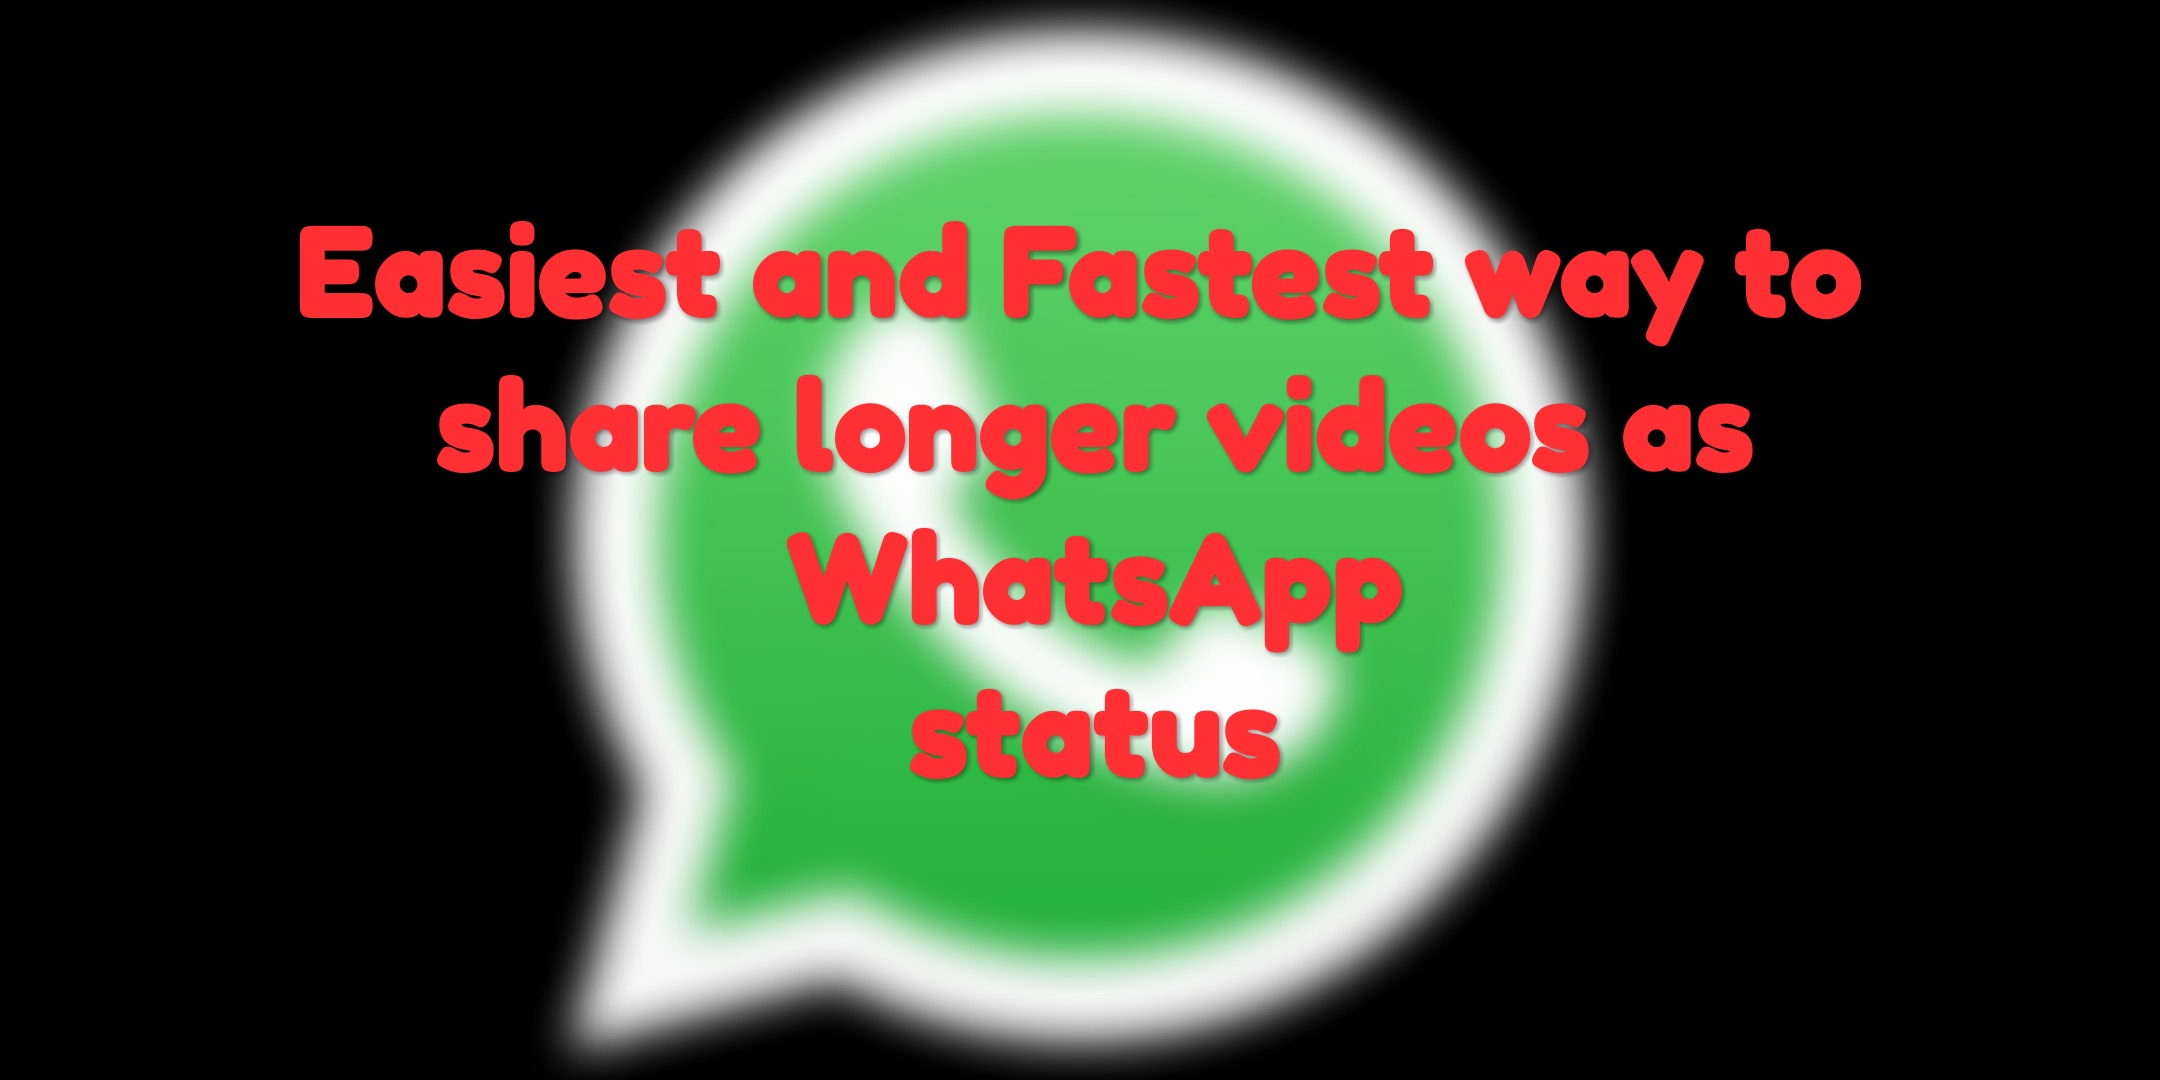 How To Share Videos Longer Than Thirty Second As Whatsapp